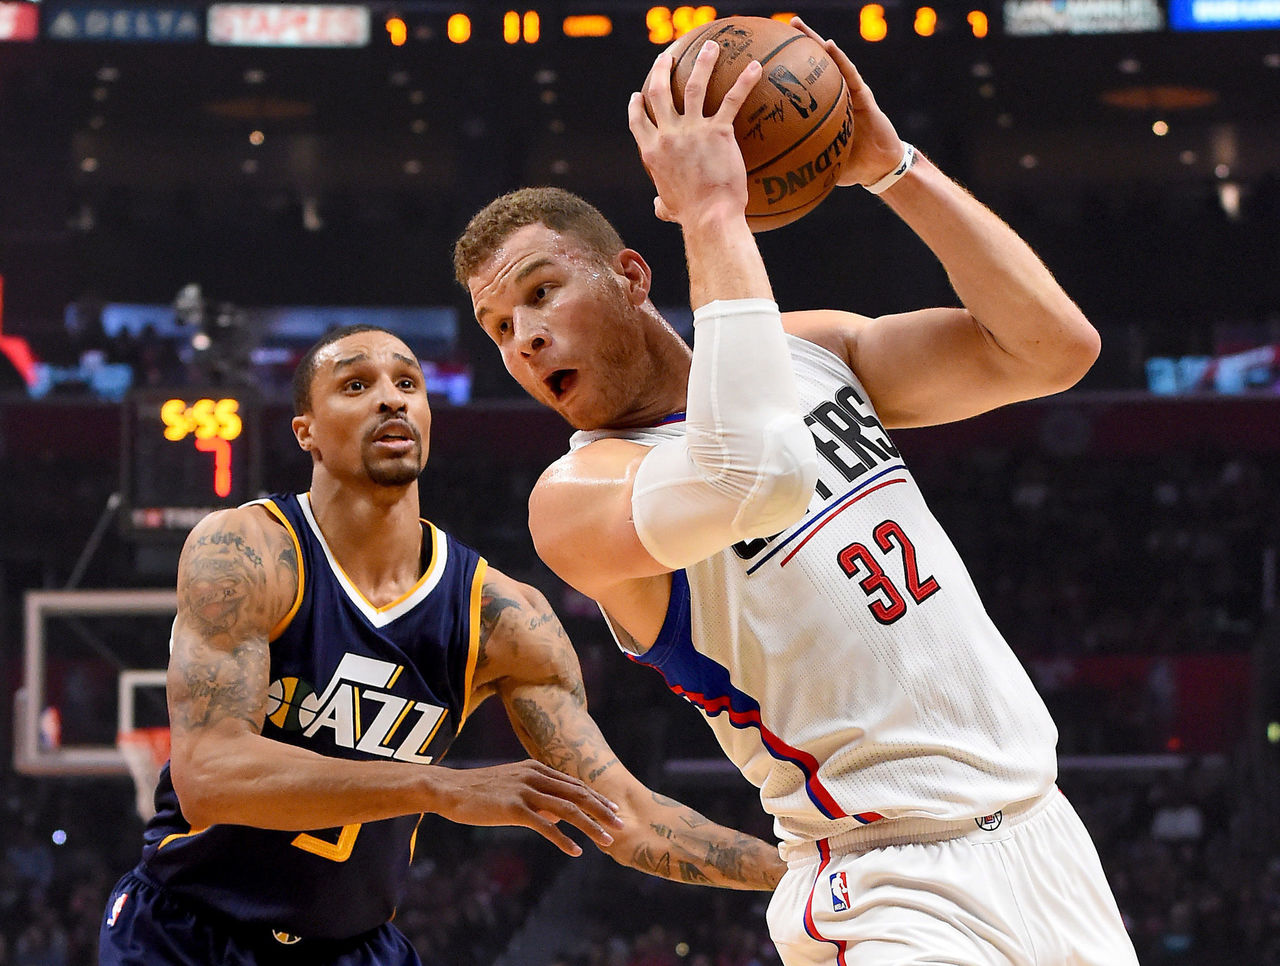 Cropped_2017-03-25t200859z_1774508917_nocid_rtrmadp_3_nba-utah-jazz-at-los-angeles-clippers